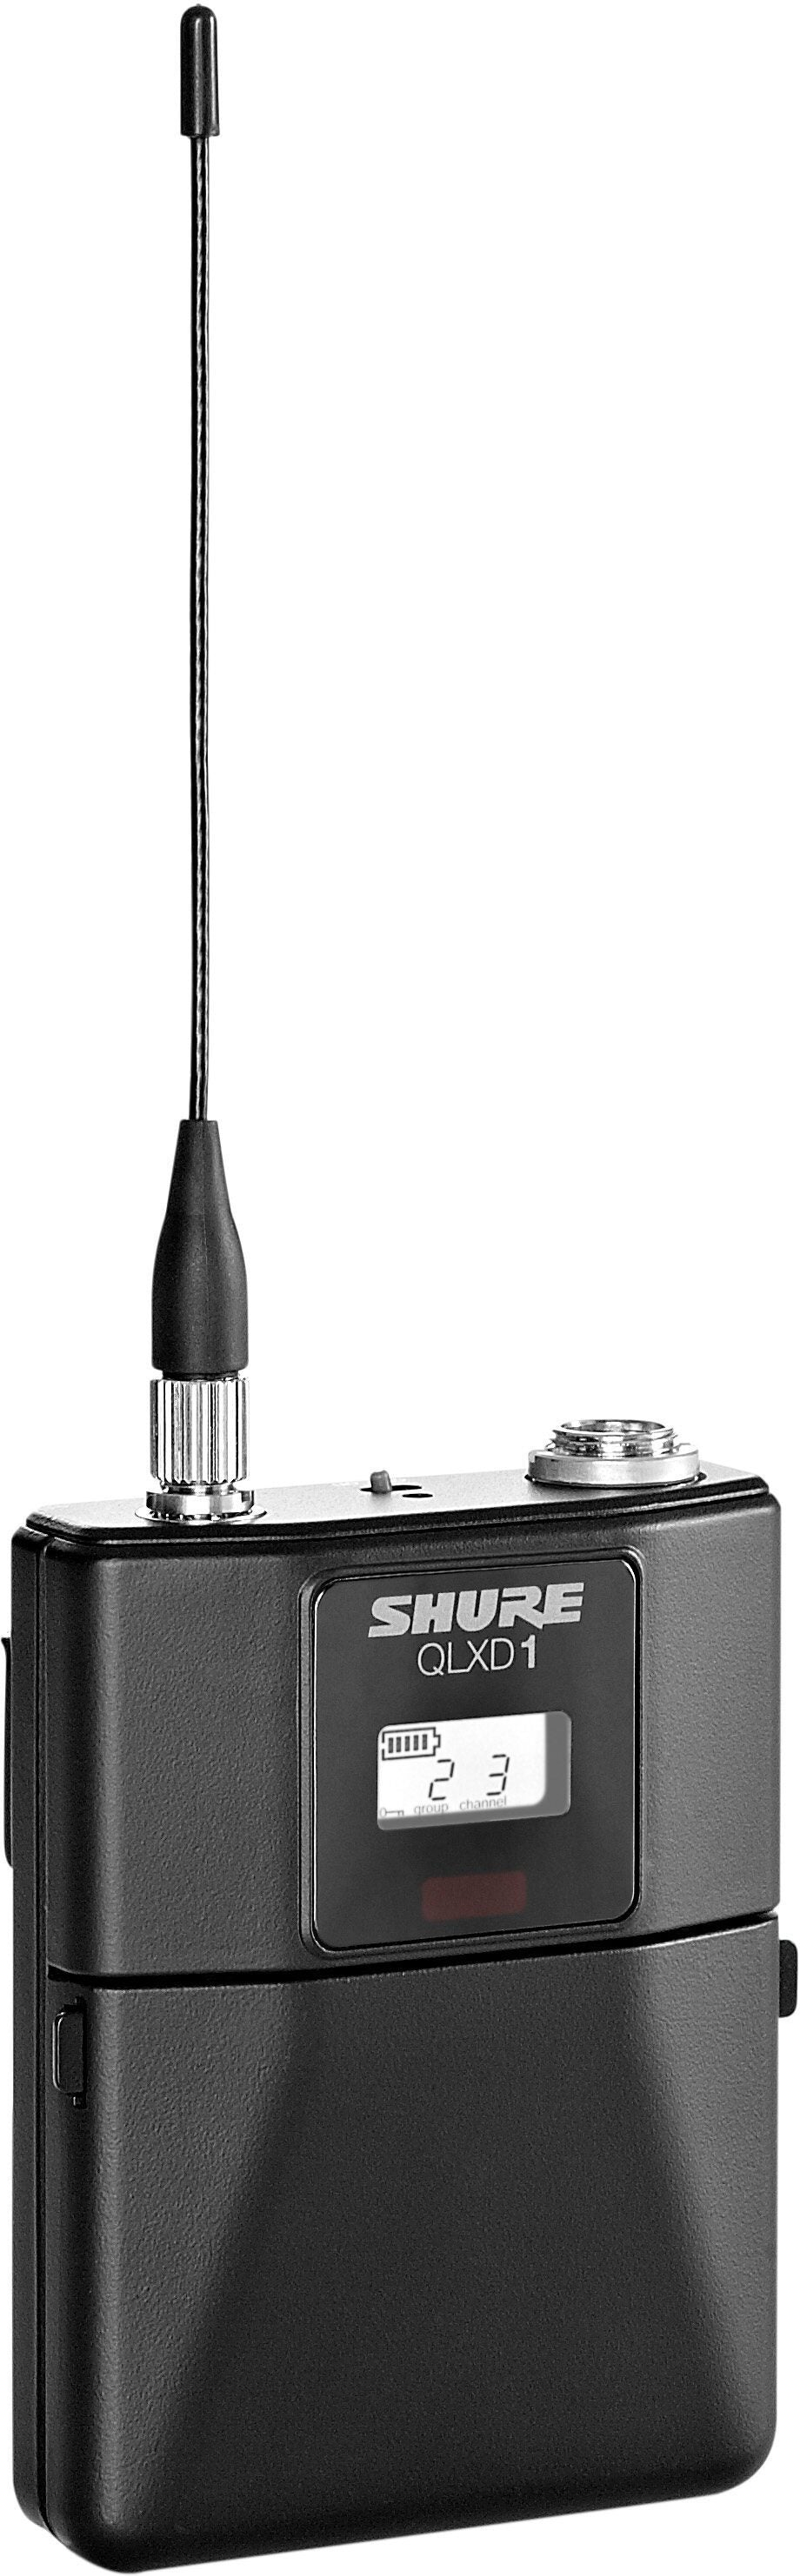 Shure QLXD1484 Wireless System with WL184 Lavalier Microphone, Band H50 (534 - 598 MHz)